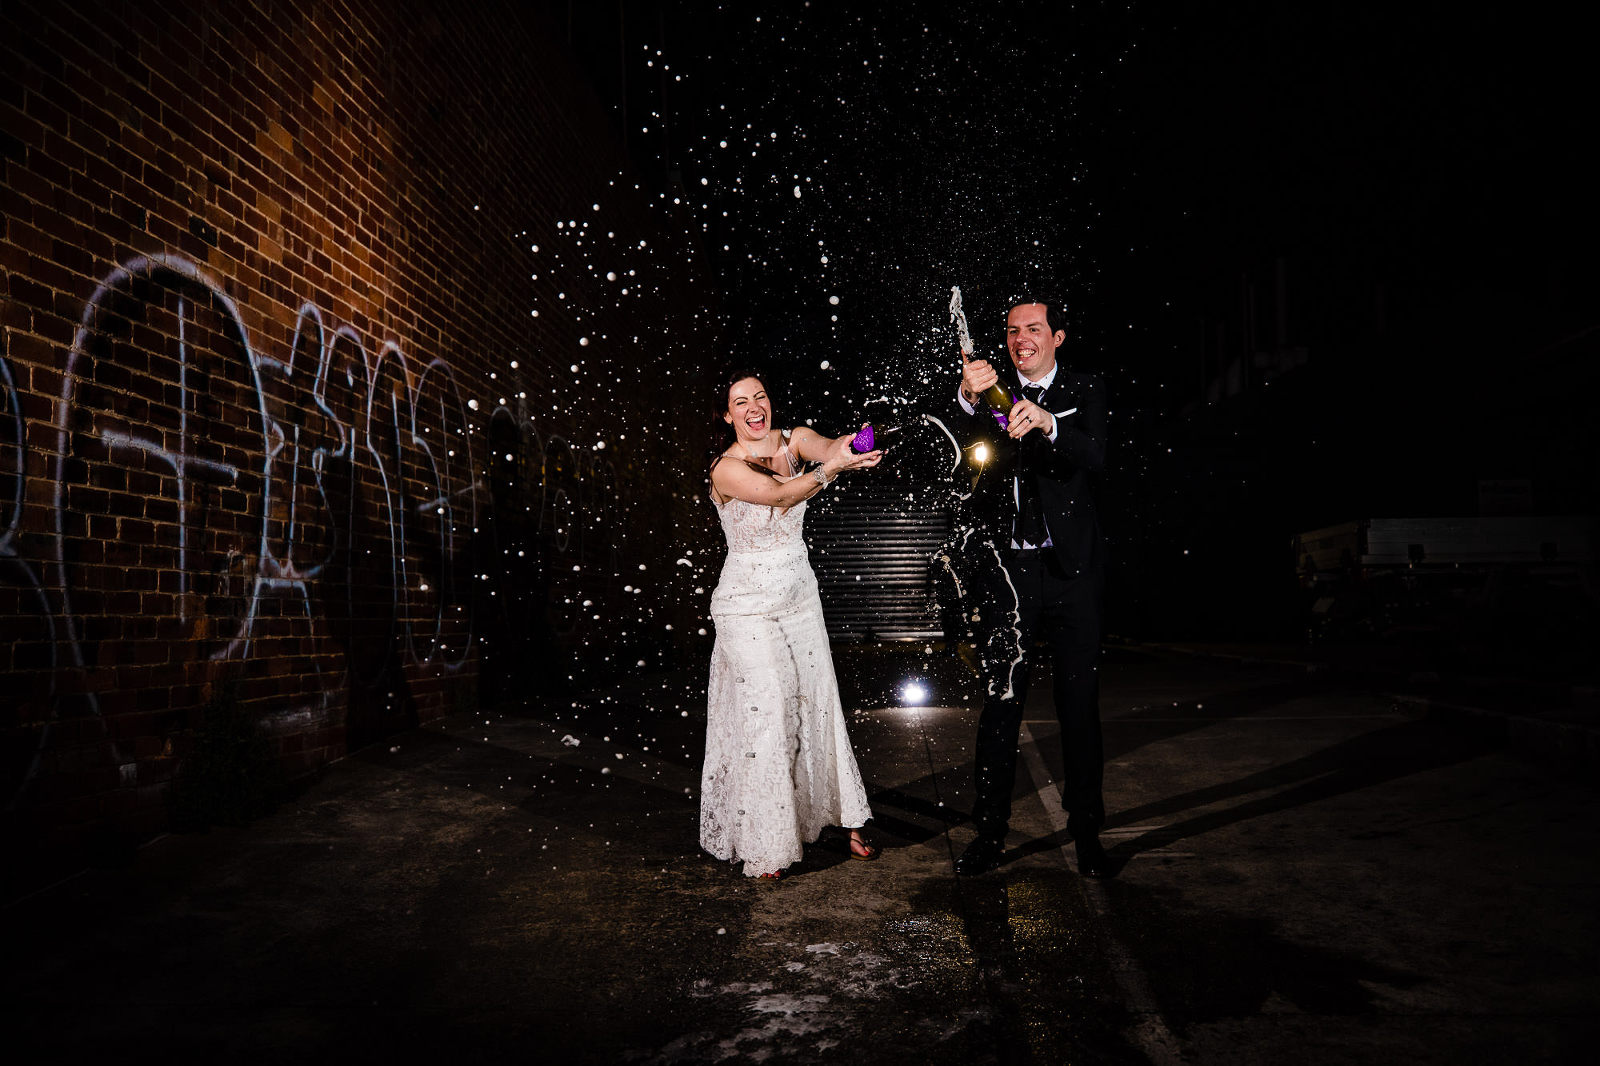 bride and groom spraying champagne